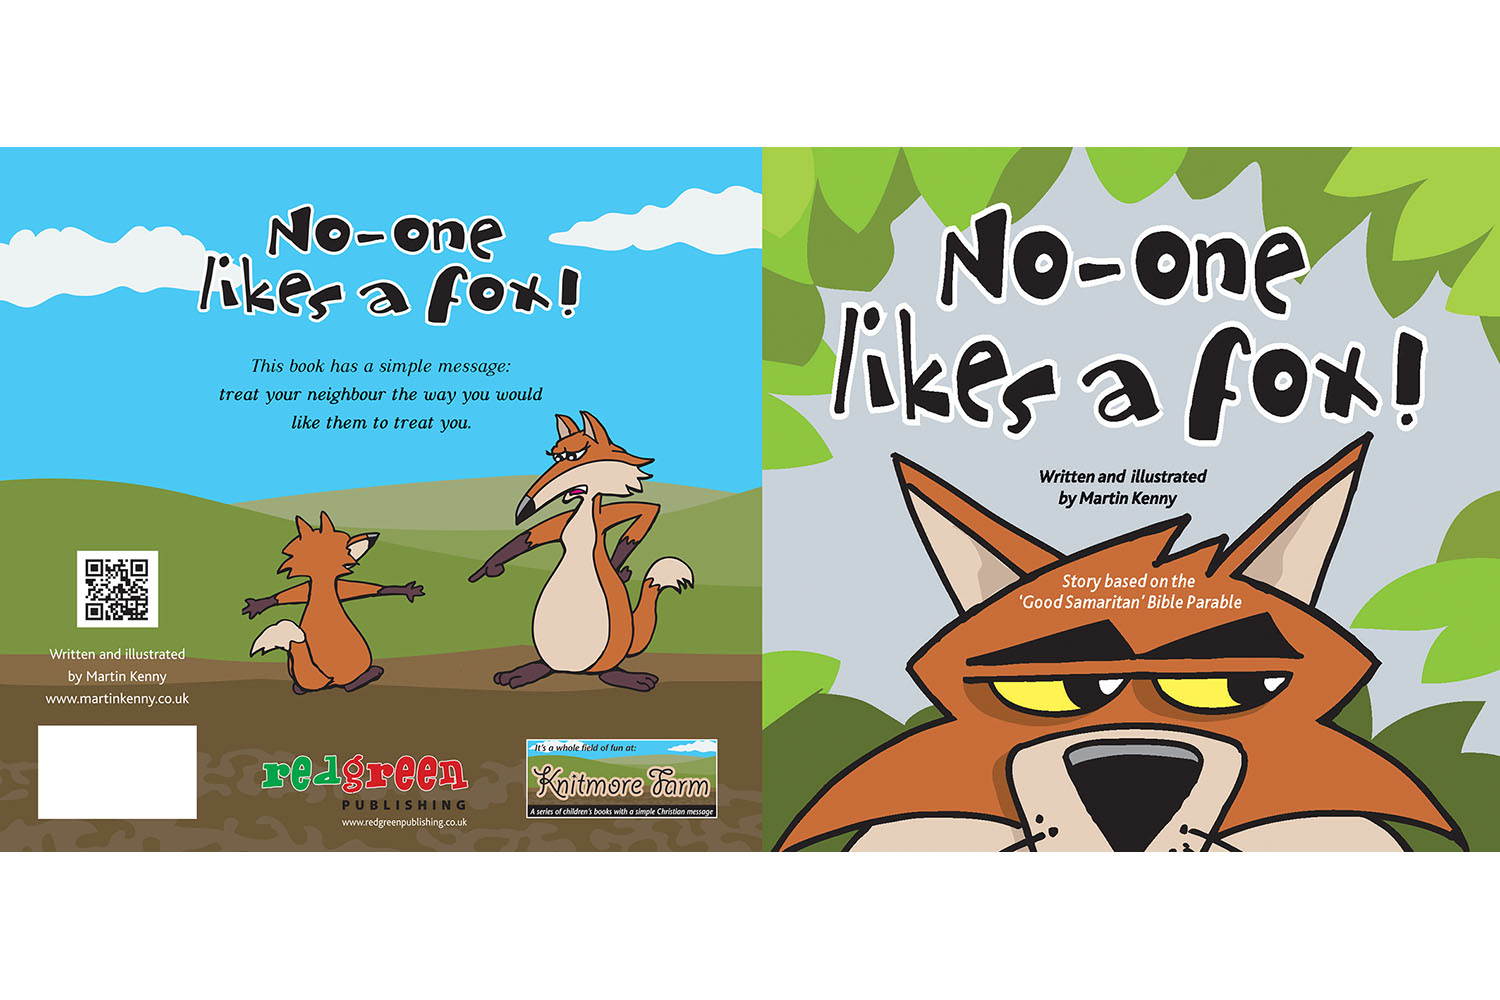 No-one likes a fox